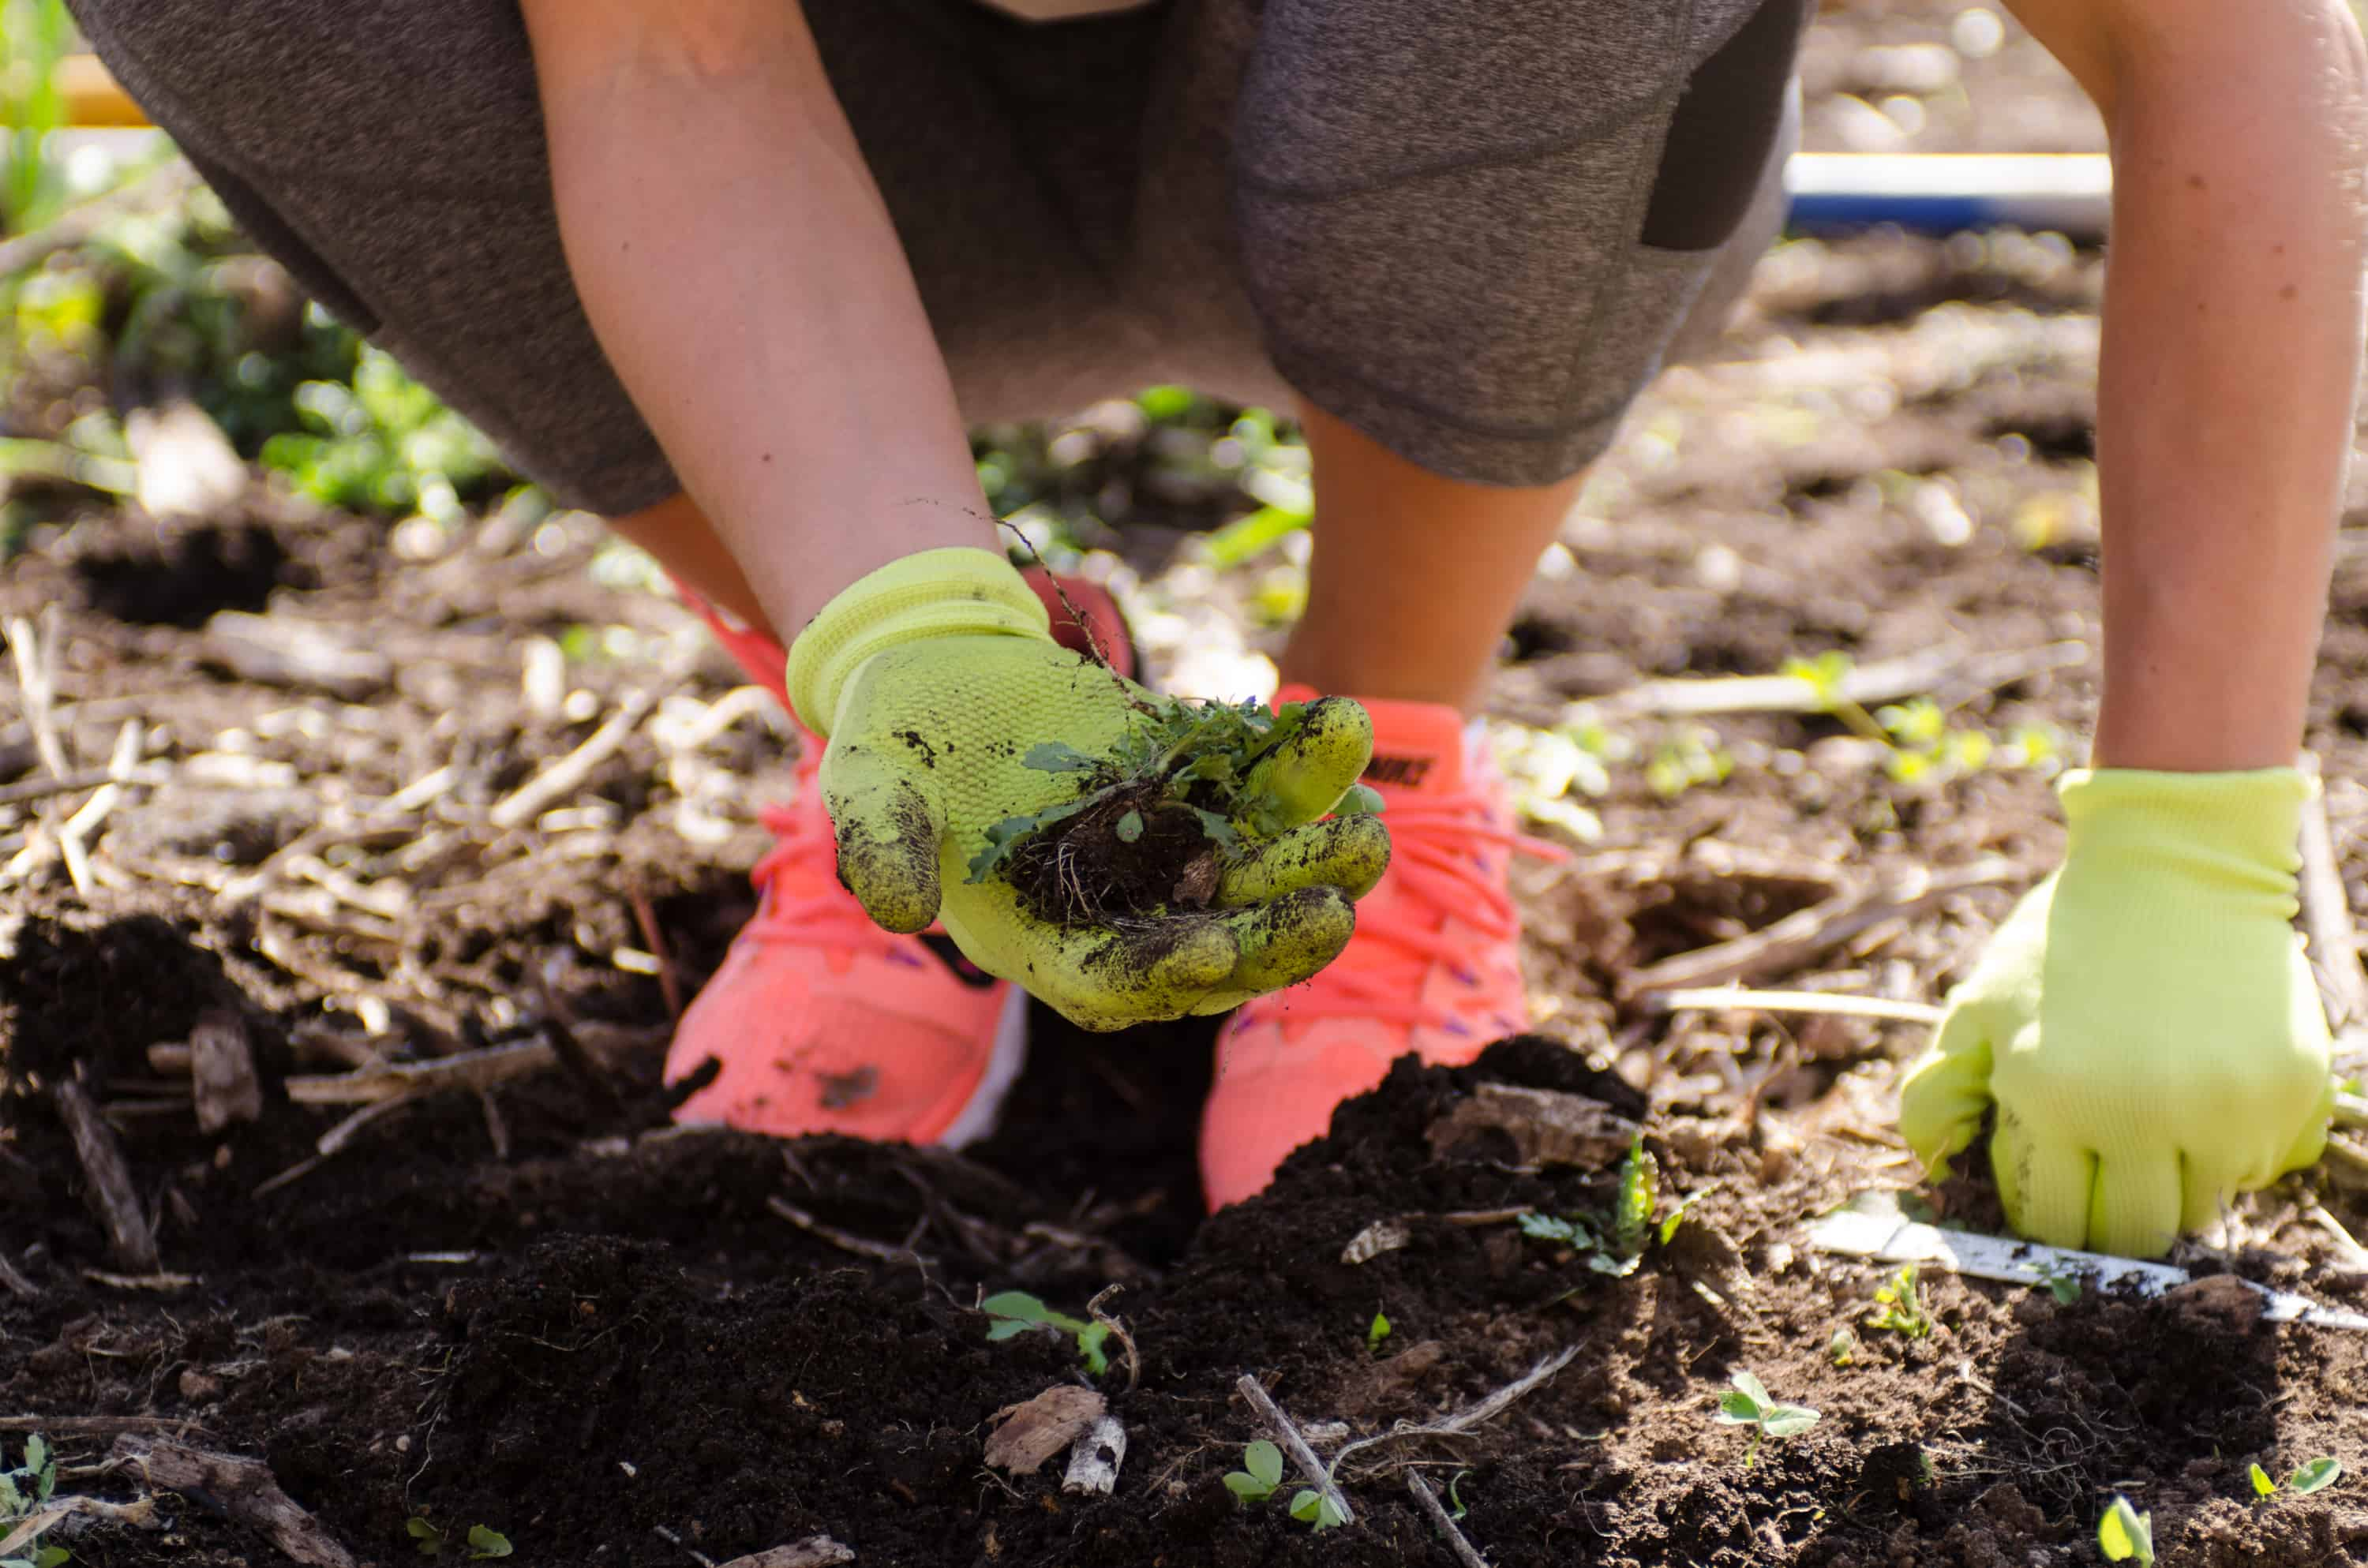 A recap of the gardening initiative sponsored by Mrs. Meyer's Clean Day in partnership with the American Community Garden Association. Great products and a great cause!